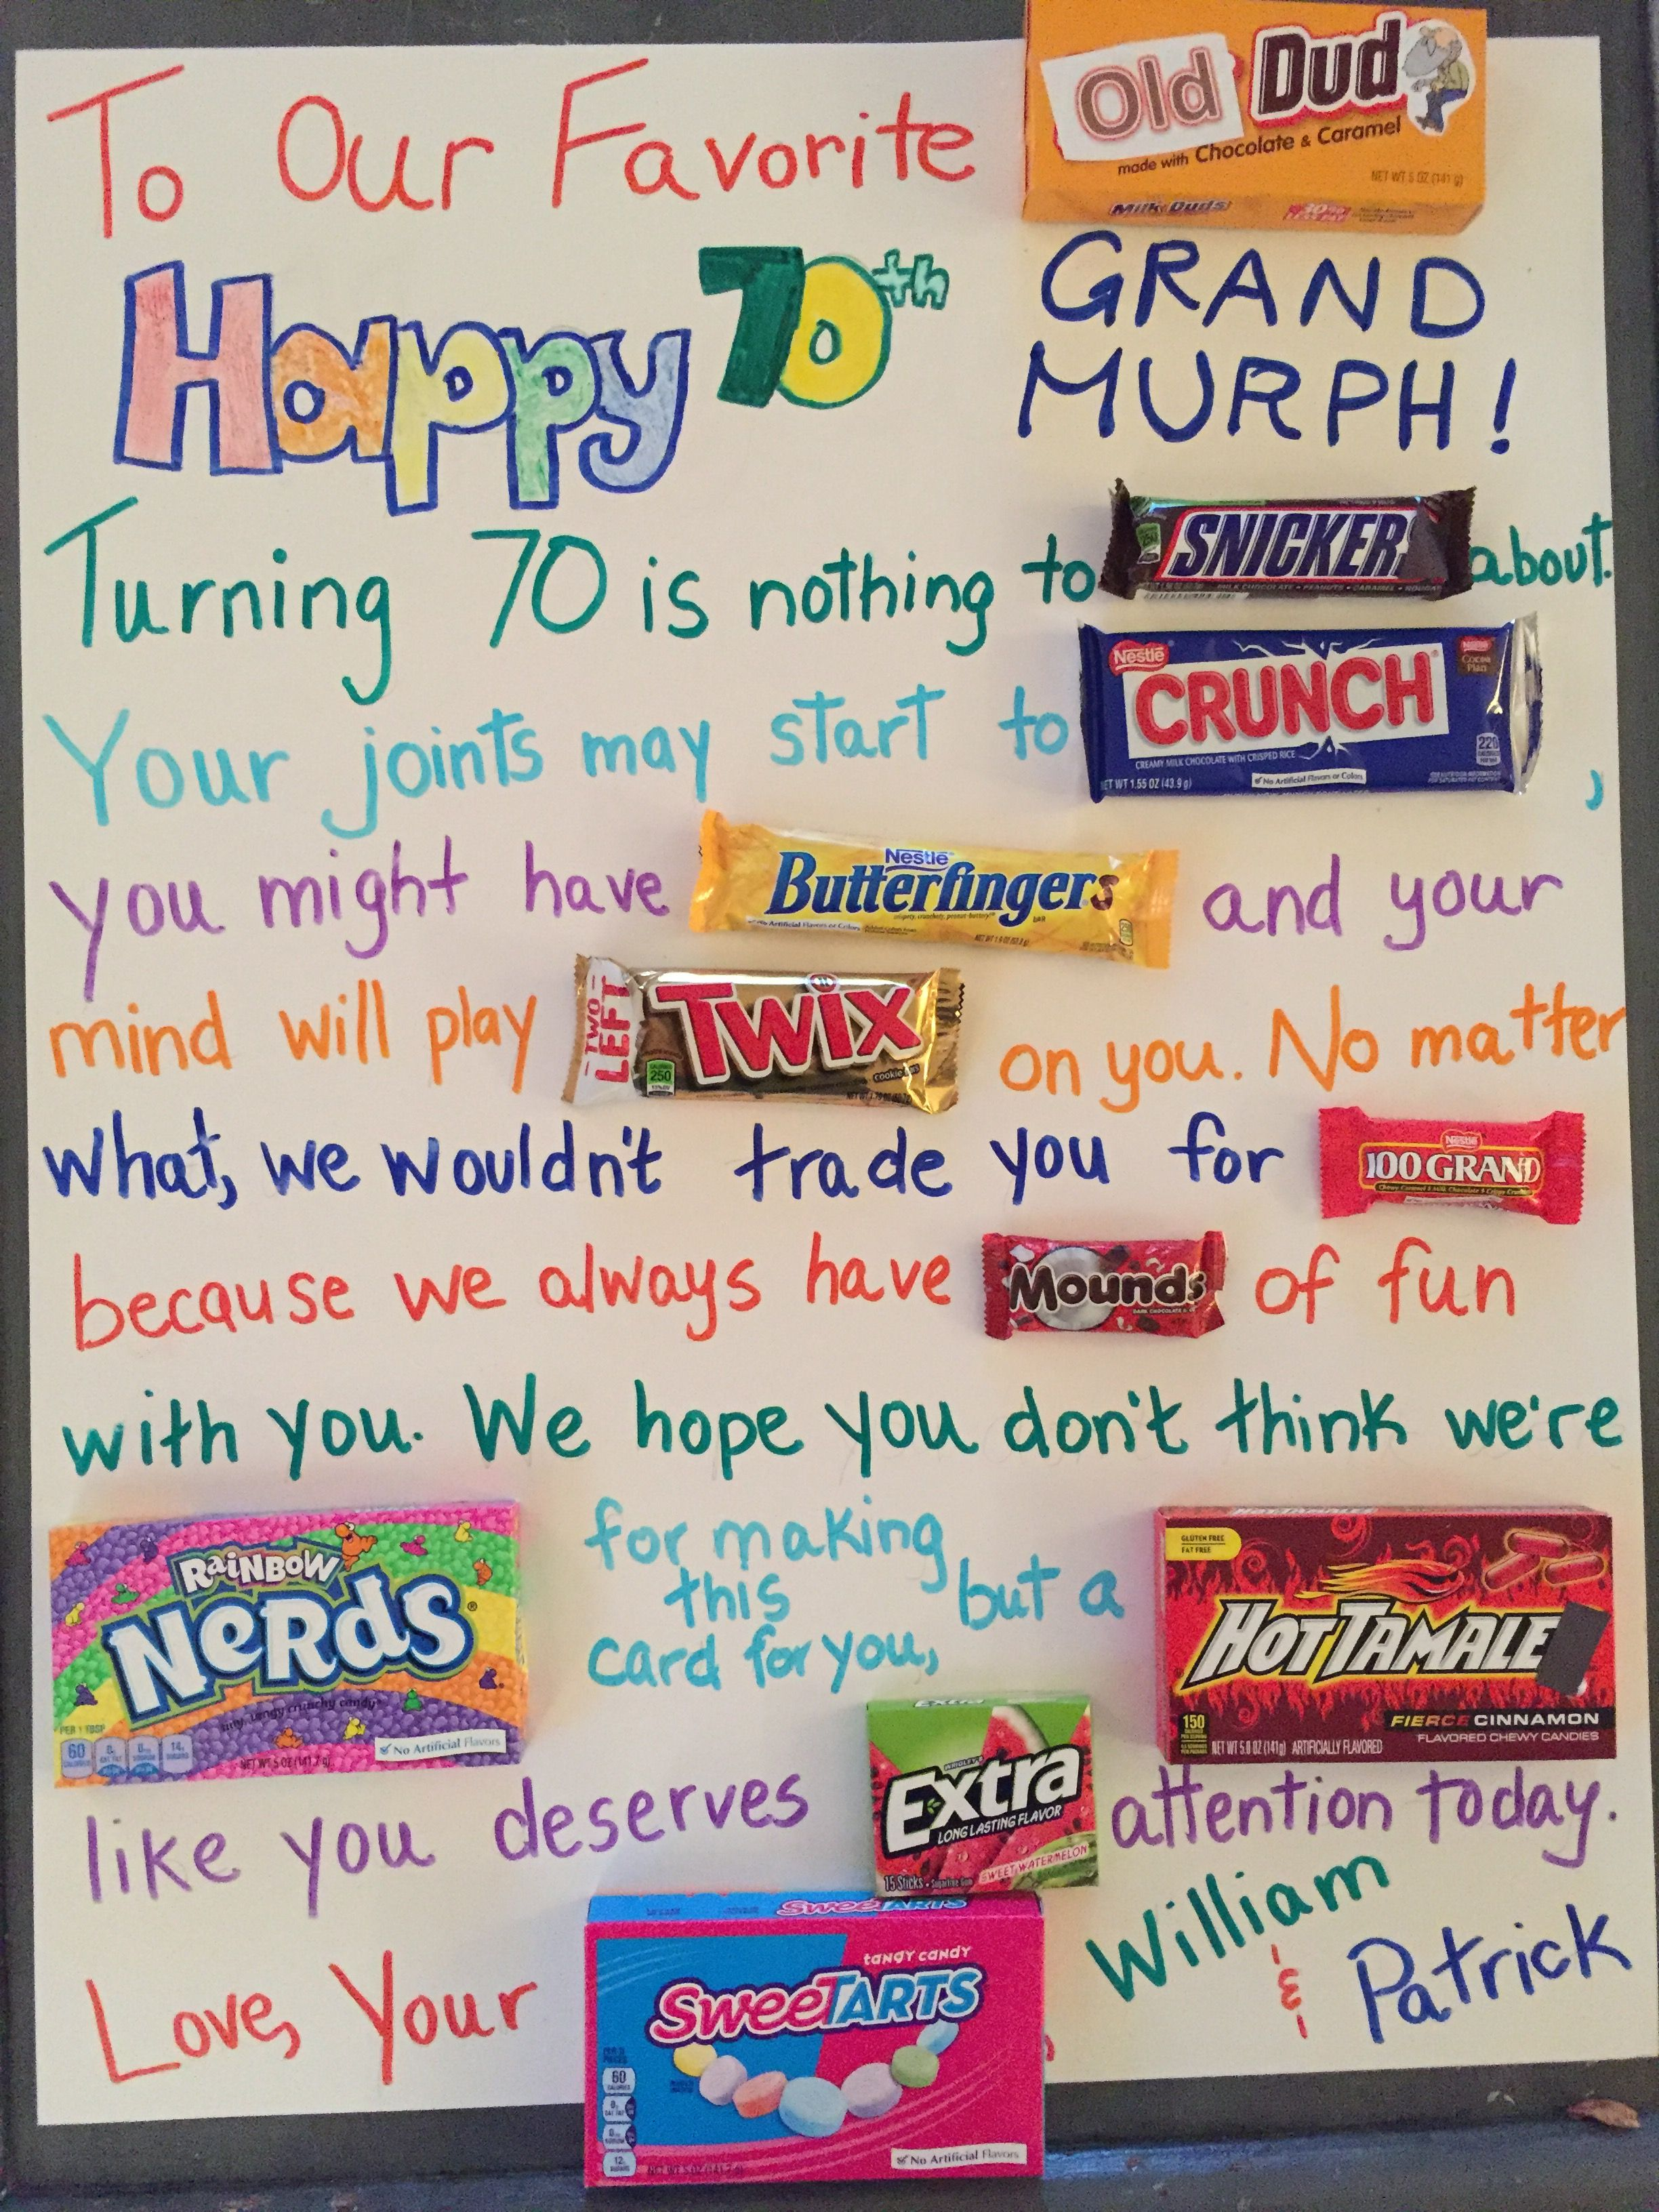 Milestone Birthday Candy Poster Happy 70th Grandpa Happy Birthday Posters Birthday Candy Poster Candy Poster